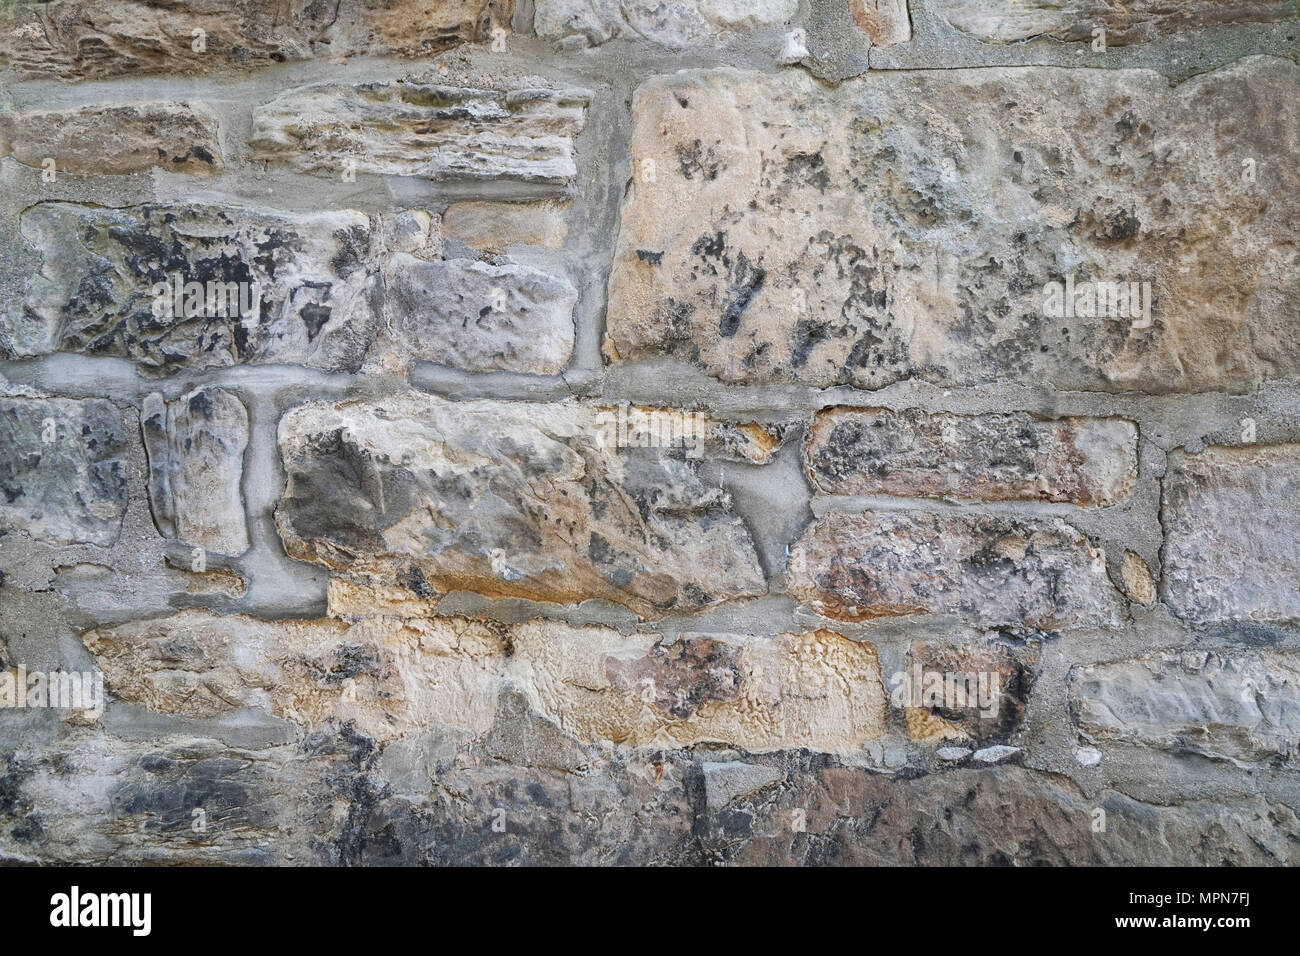 old weathered natural stone wall masonry background texture - Stock Image